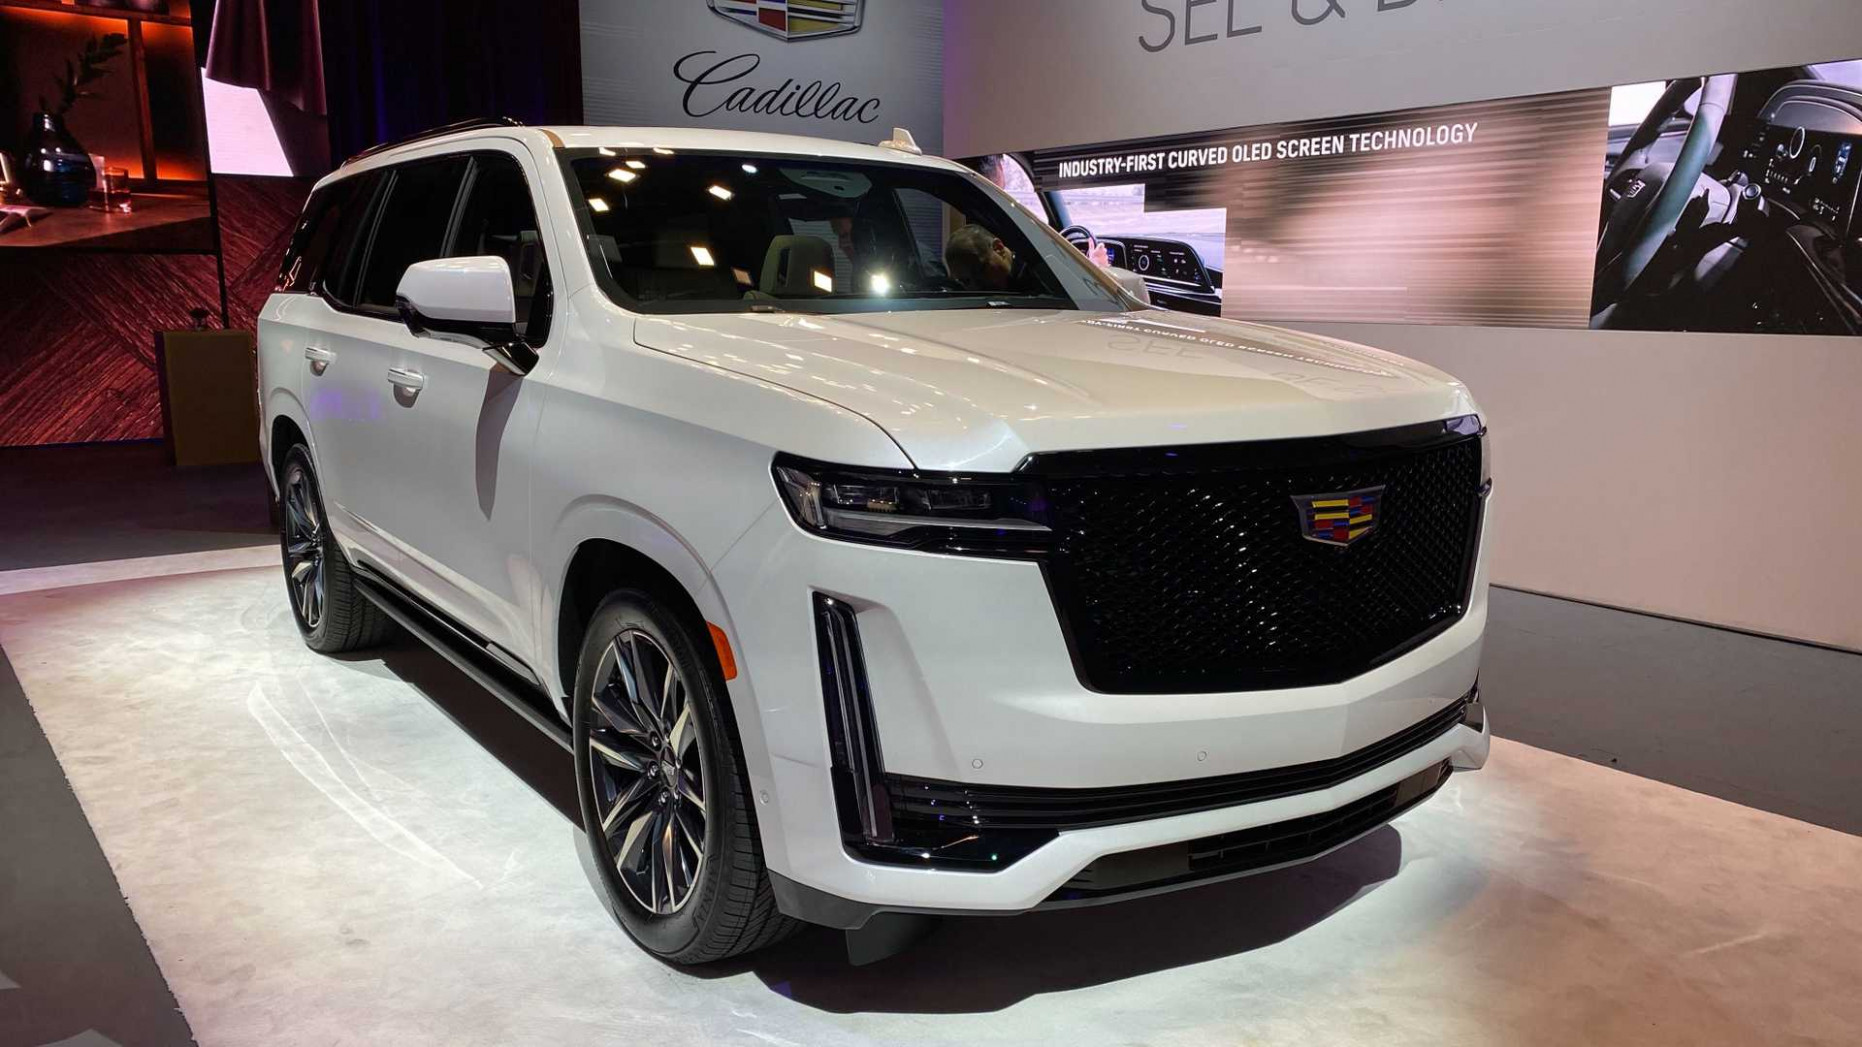 Spesification 2022 Cadillac Escalade Premium Luxury